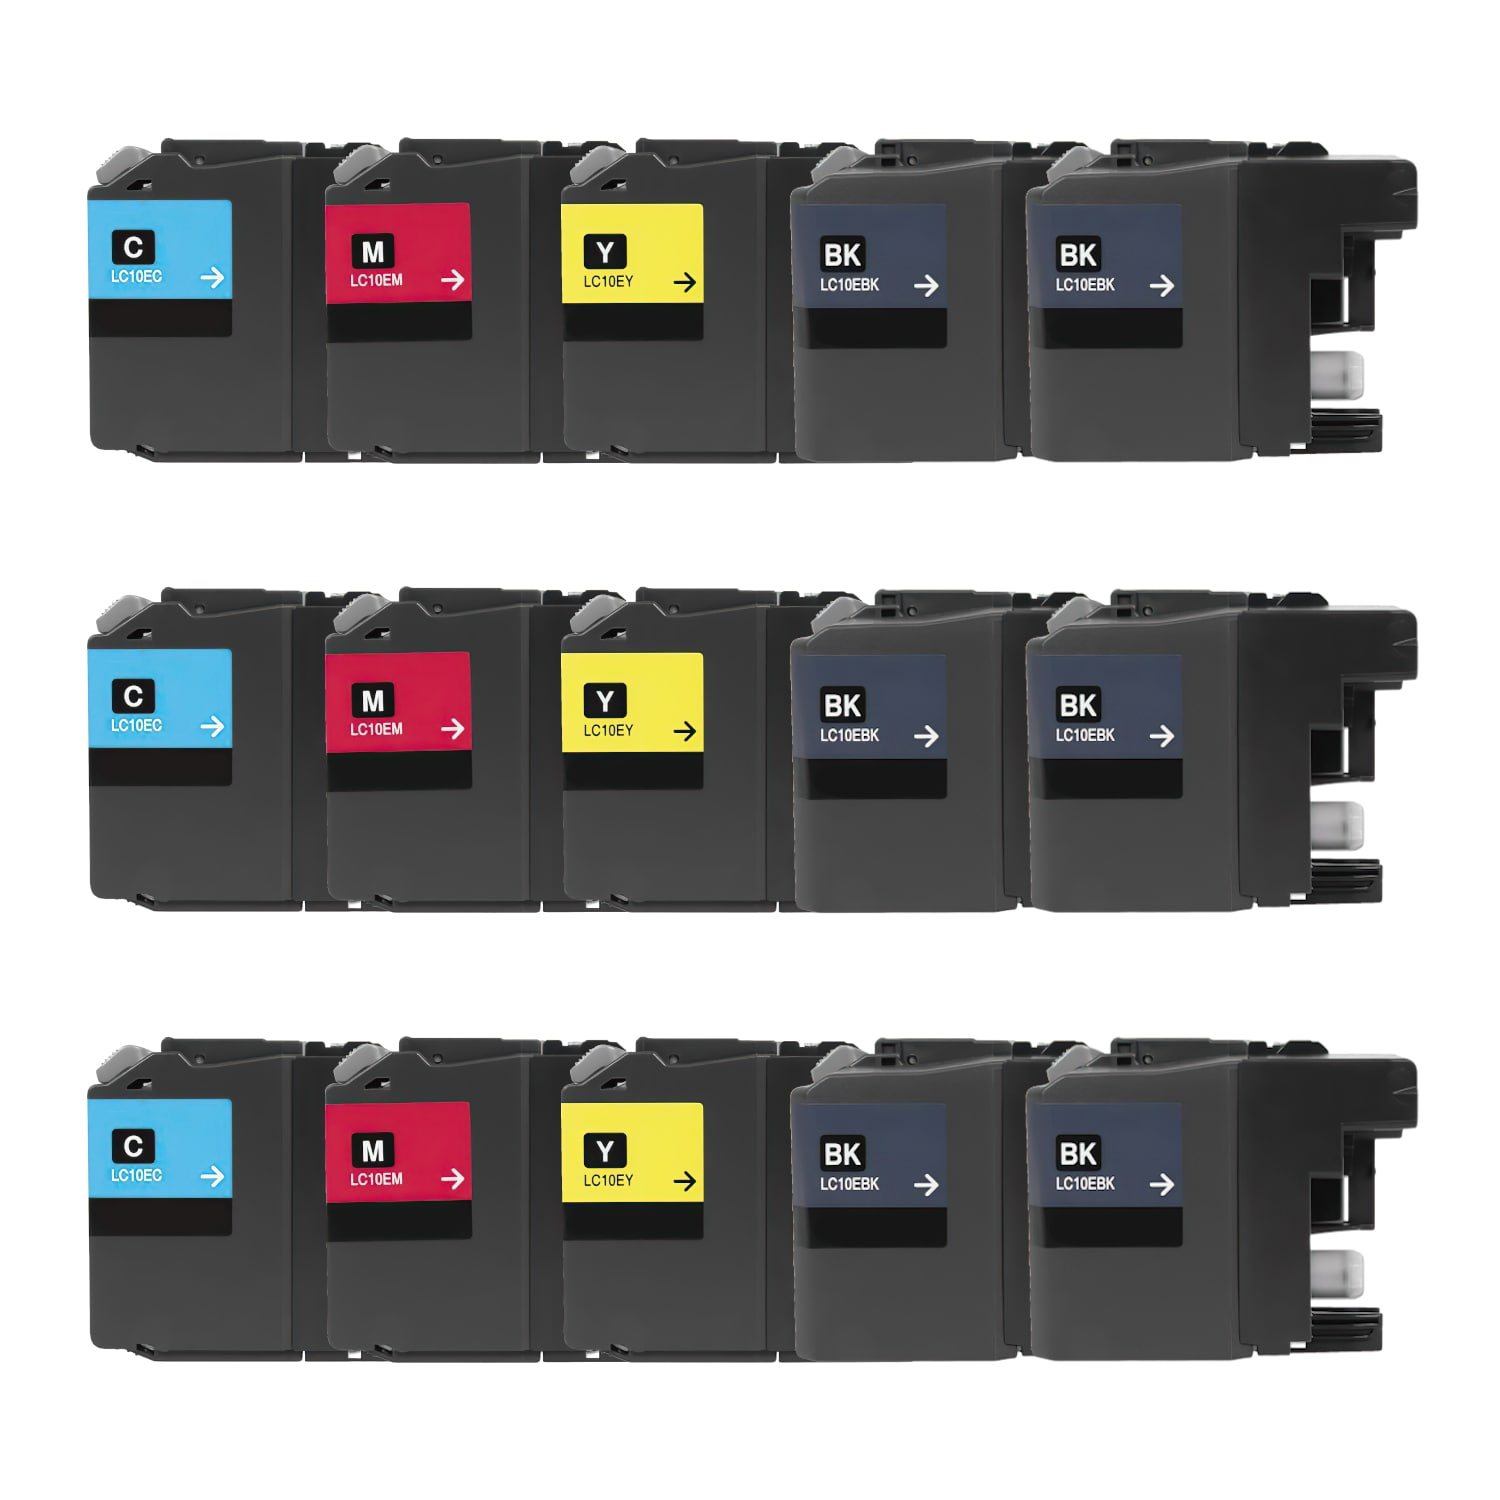 Compatible Brother LC10E Inkjet Extra High Capacity Pack - 15 Cartridges